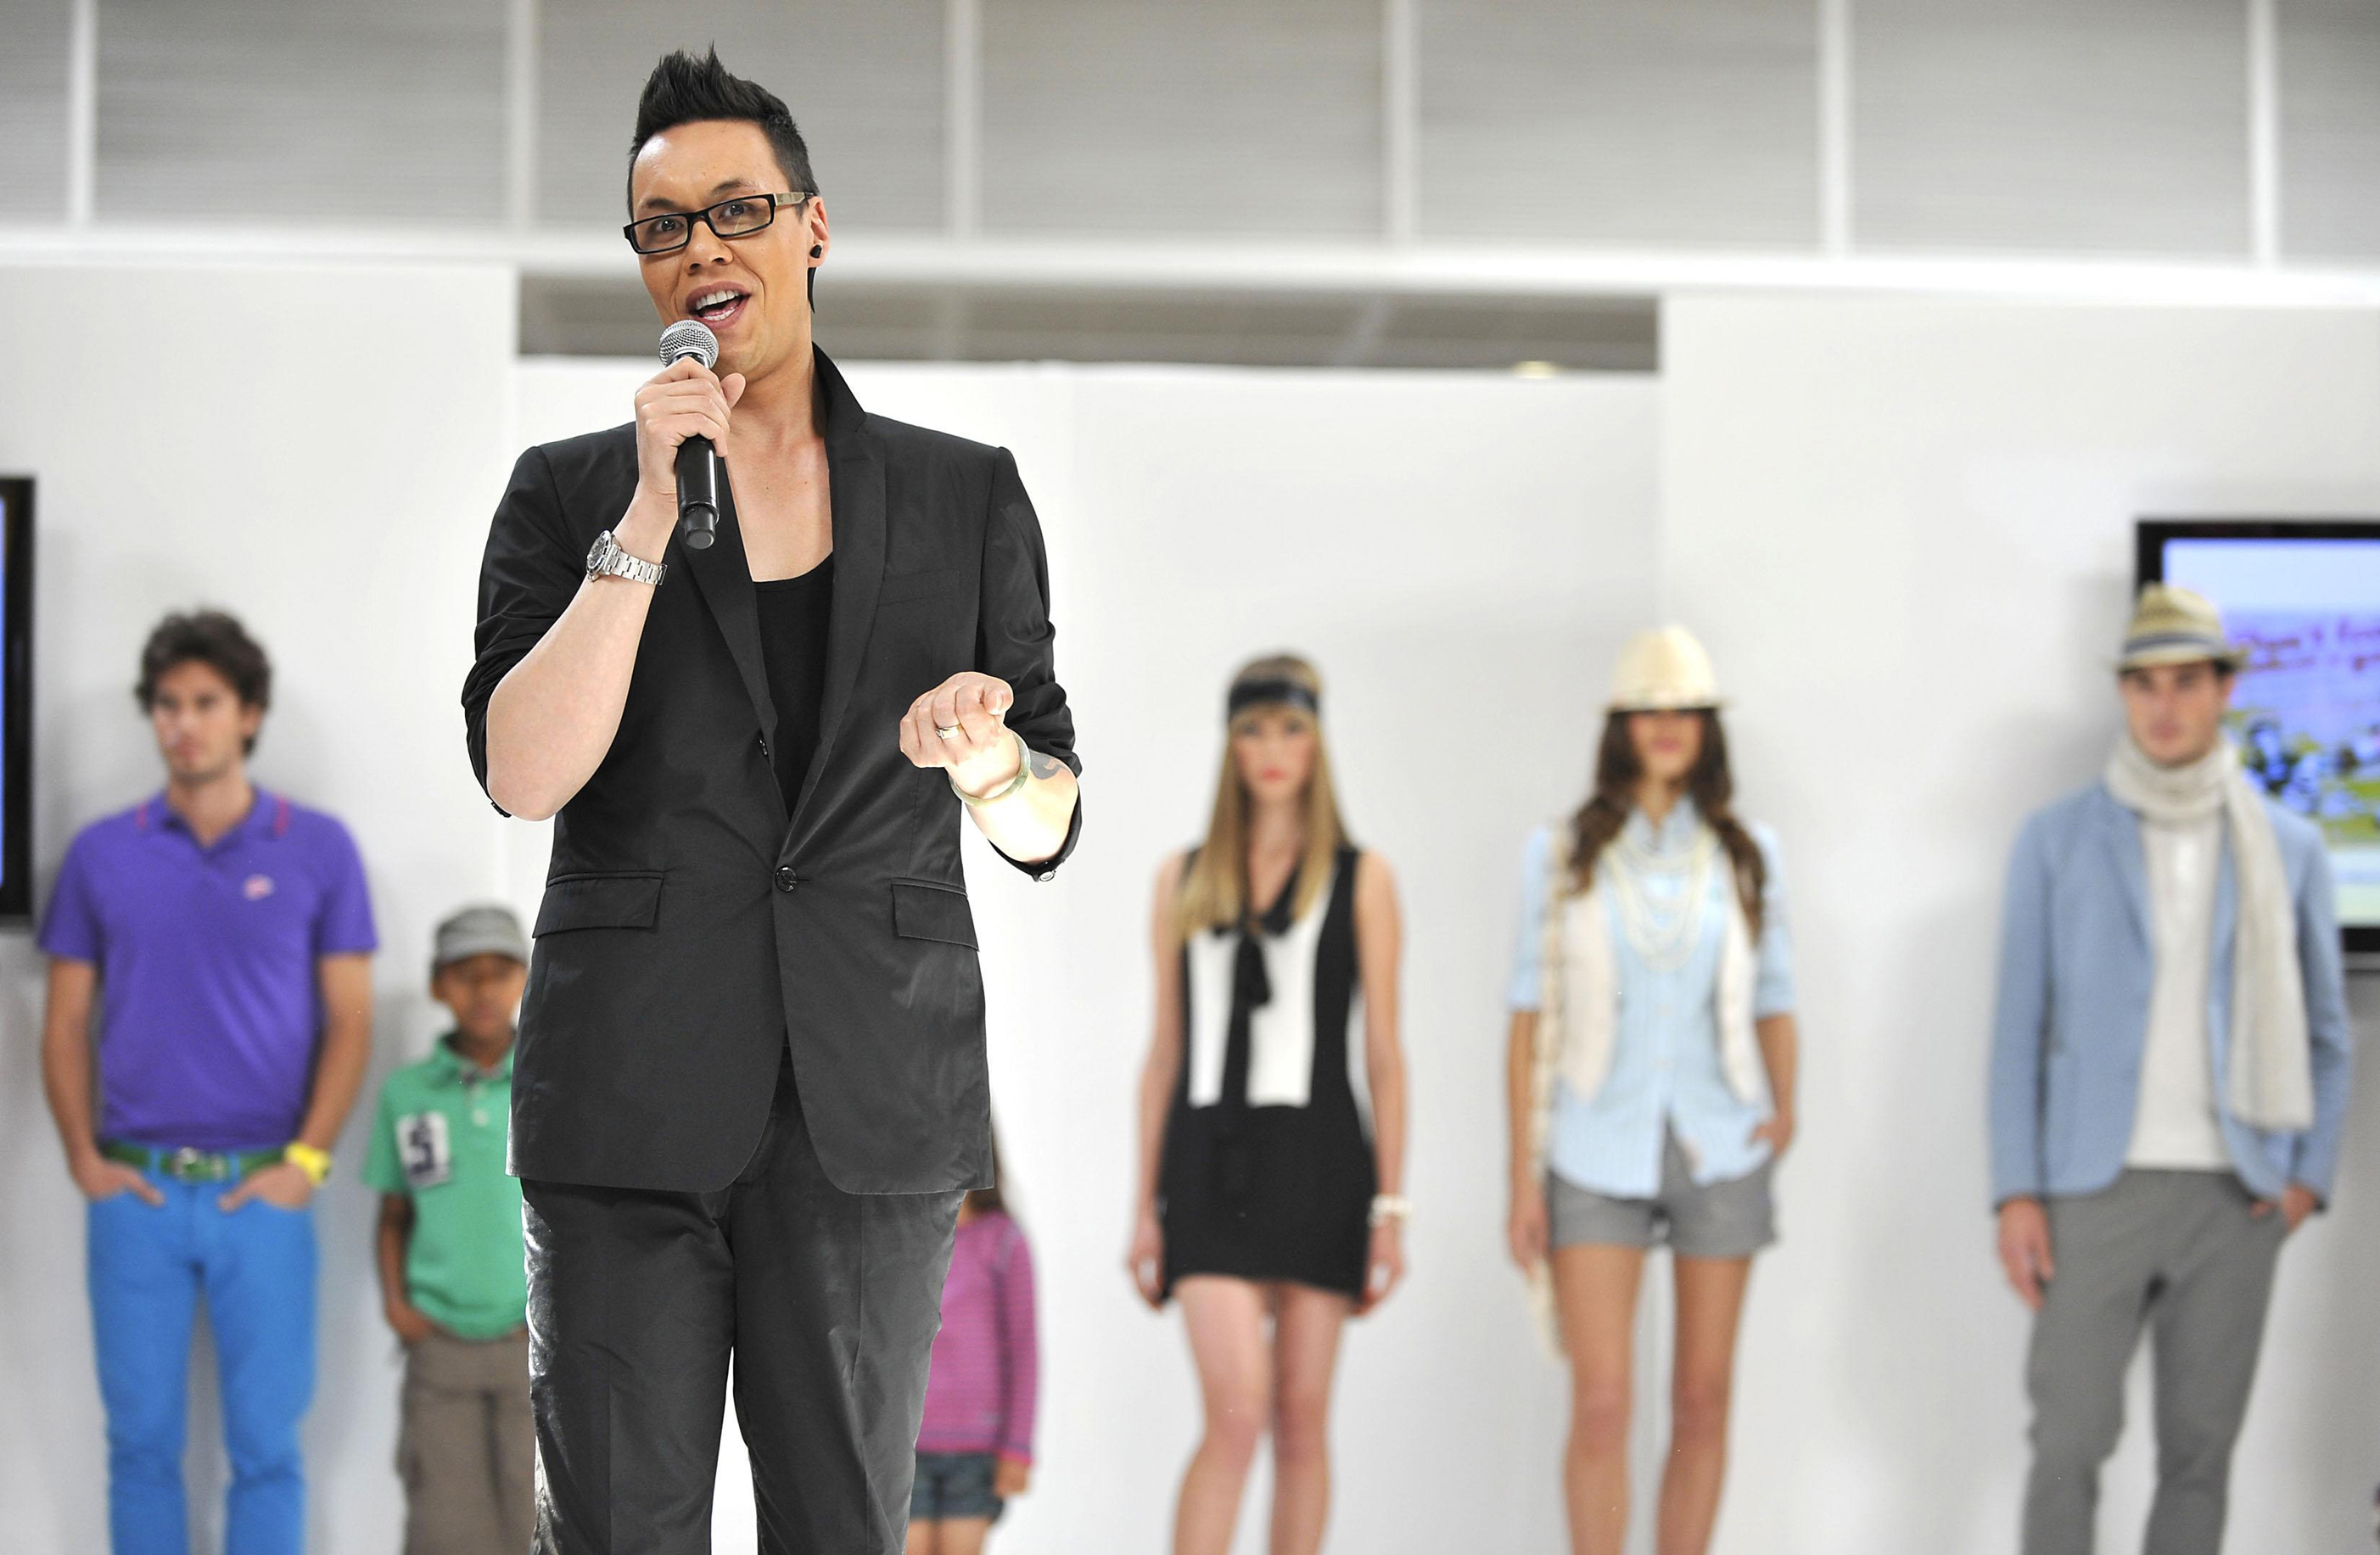 Gok Wan commentating on the catwalk at a fashion show (PA)